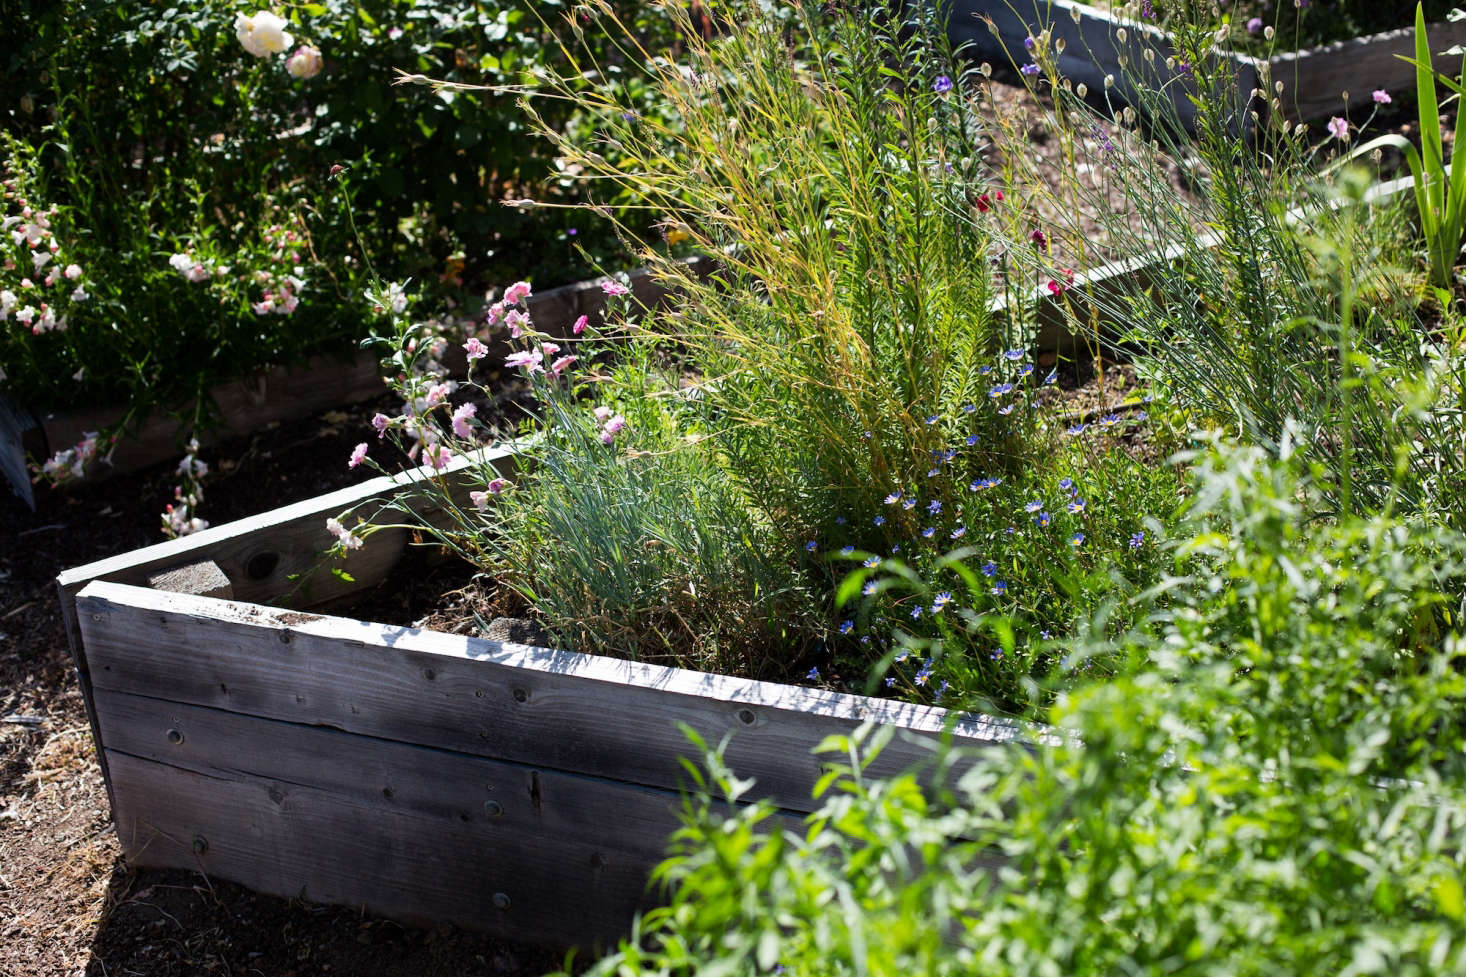 Made of simple wooden boards, the raised beds weather to a silvery gray and do not distract from the colorful plants.